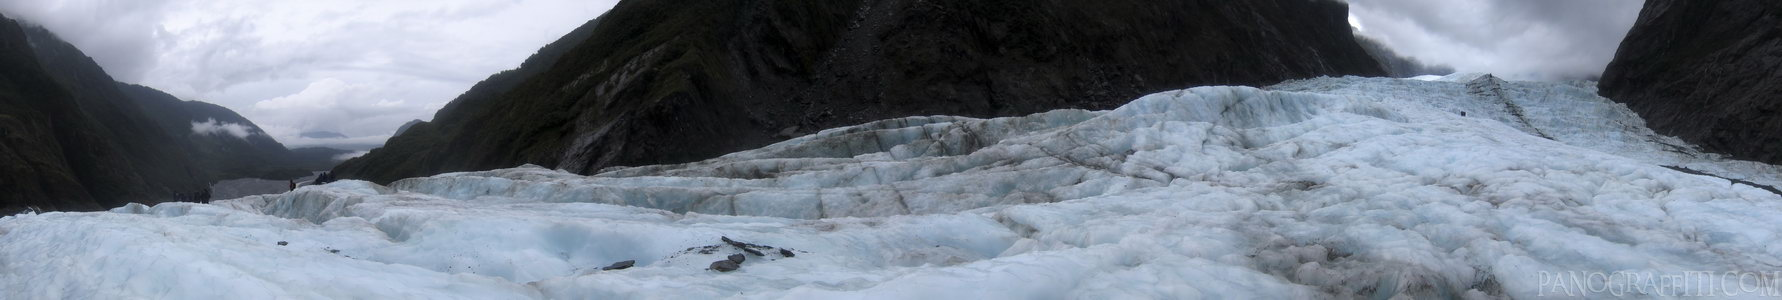 On Franz Josef Glacier - A 180 degree view looking up and down Franz Josef Glacier